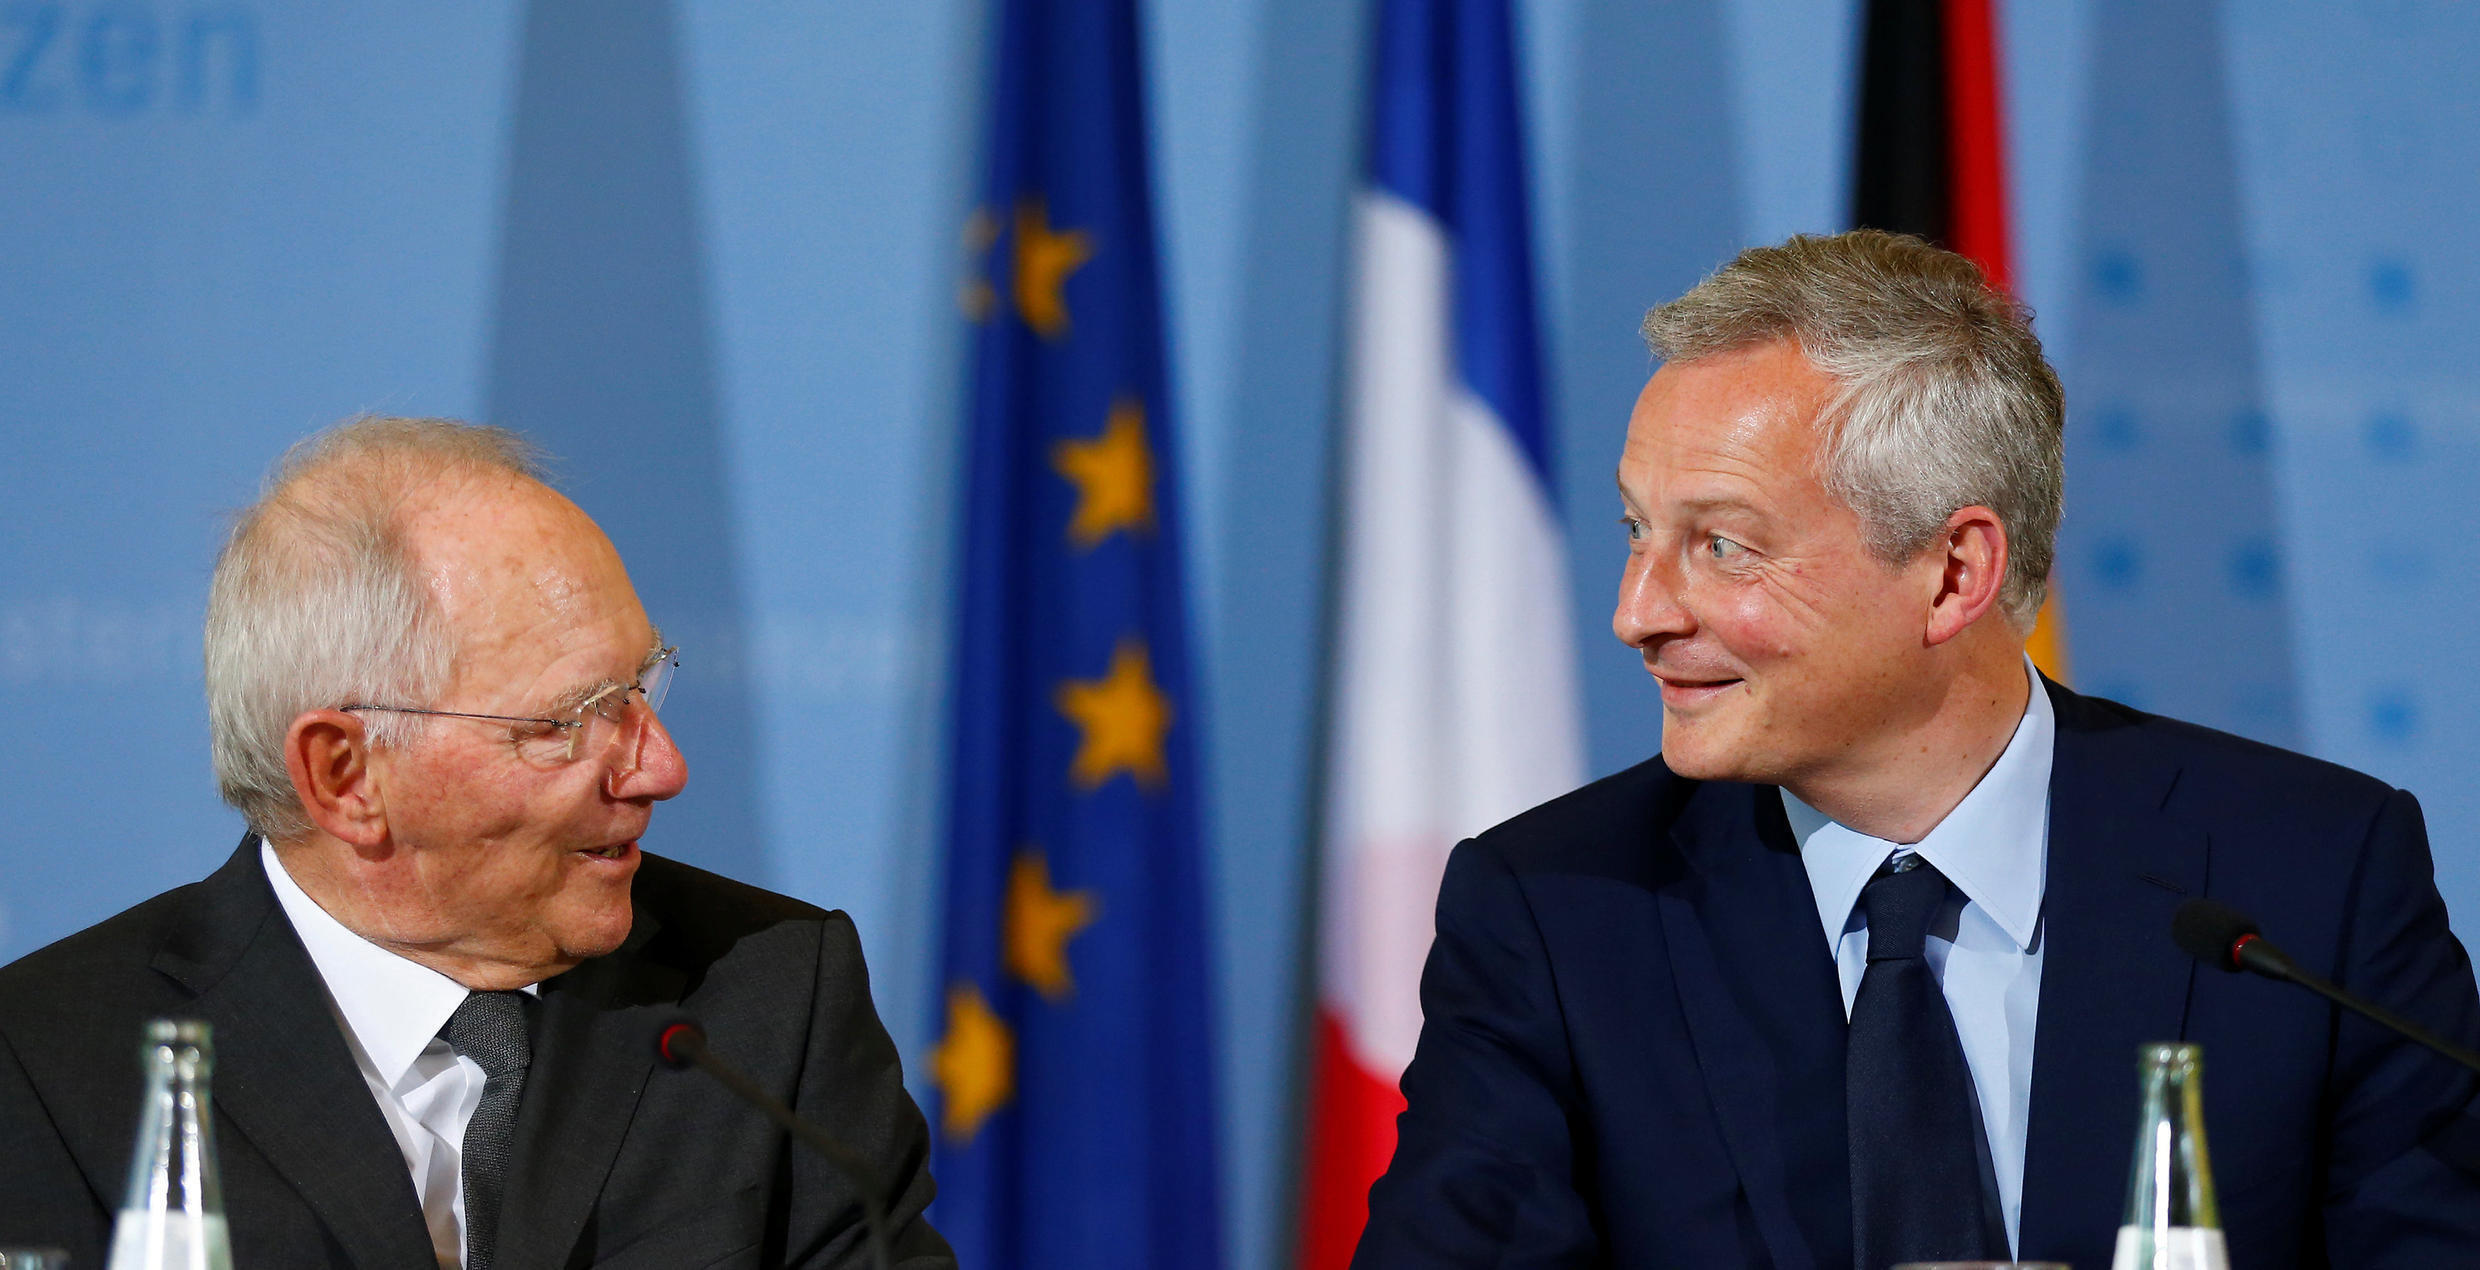 German Finance Minister Wolfgang Schaeuble and French Economy minister Bruno Le Maire attend a news conference in Berlin, Germany, May 22, 2017.